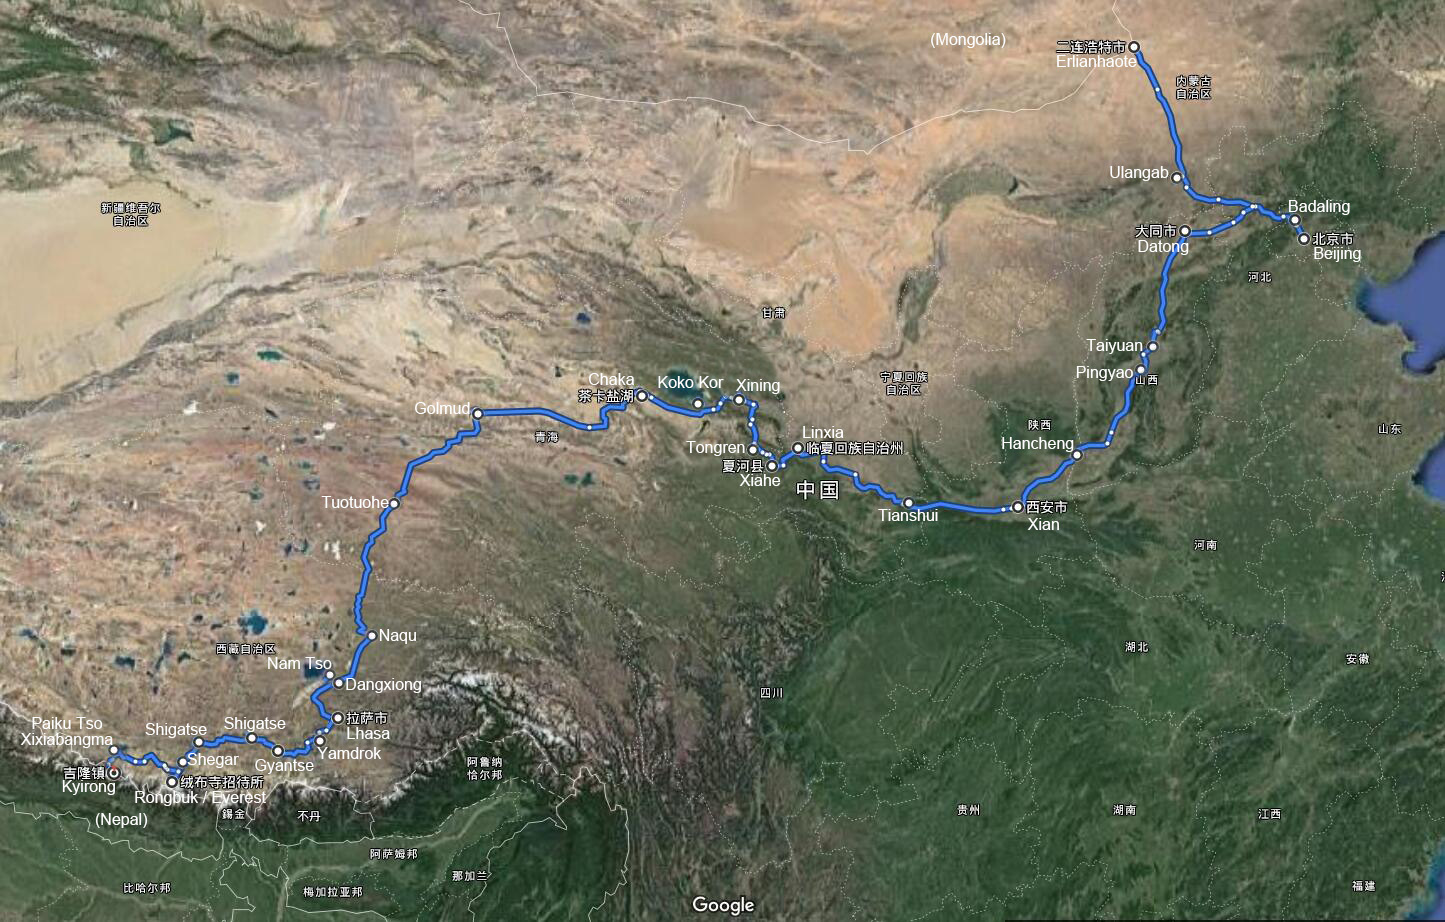 Self Drive Tour from Nepal through China to Mongolia